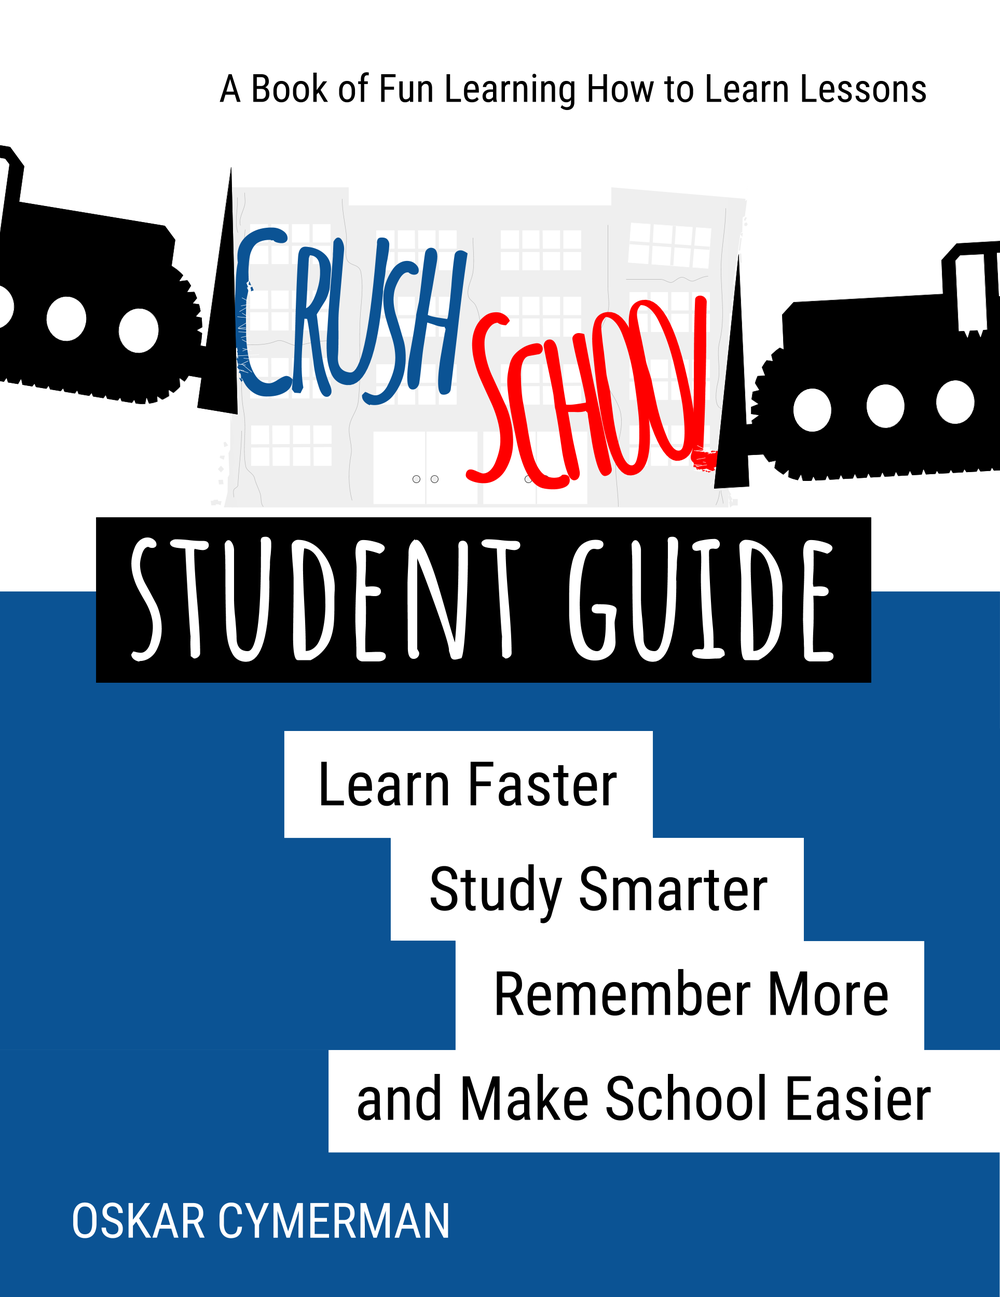 Crush School Student Guide: Learn Faster, Study Smarter, Rememeber More, and Make School Easier - FREE BOOK PDF